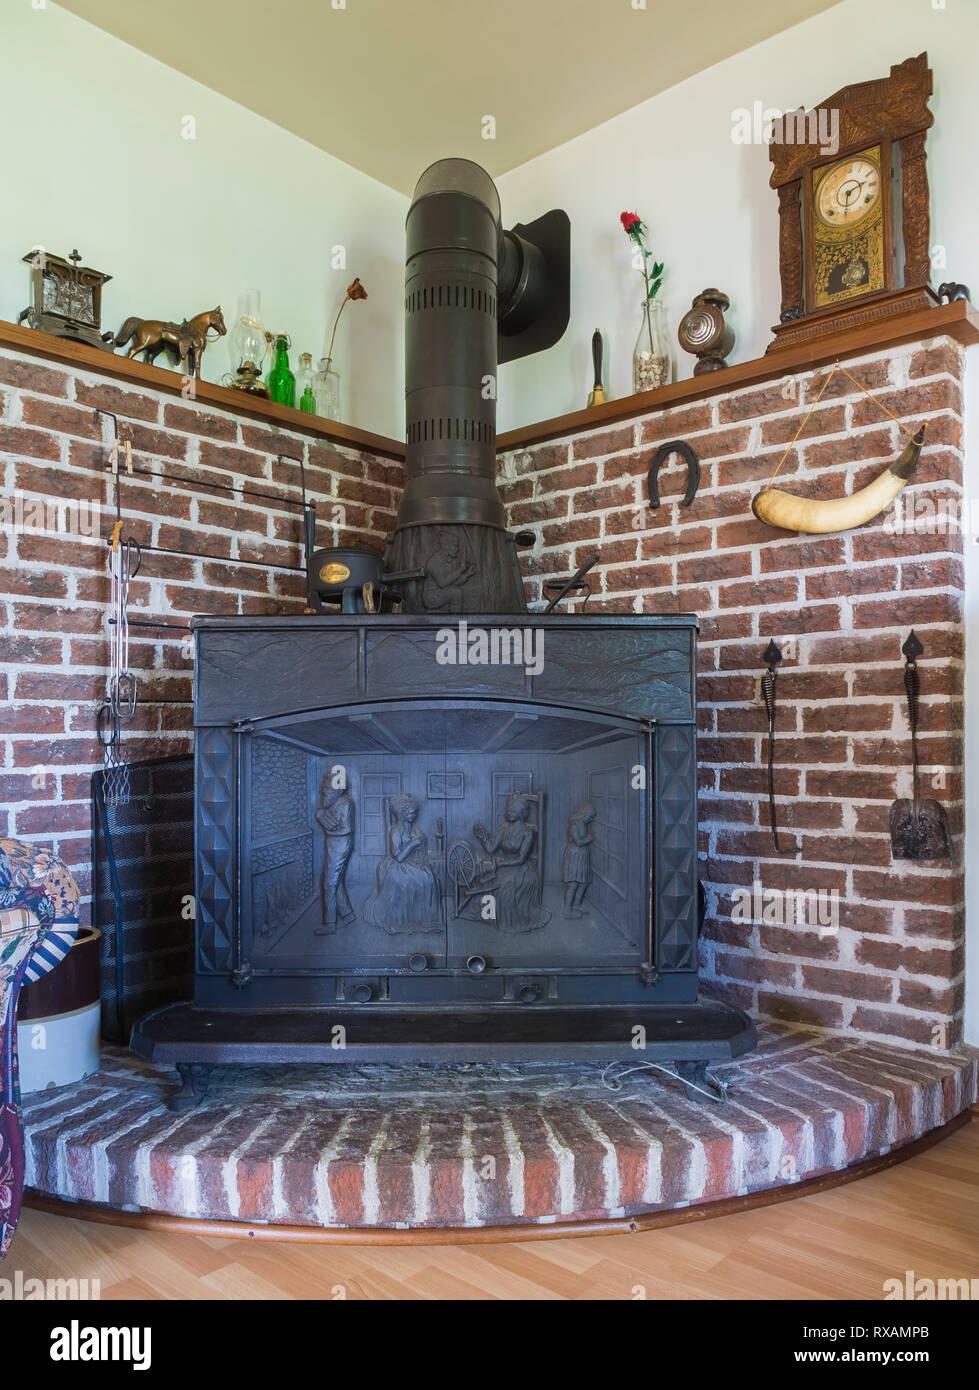 1977 Franklin reproduction wood stove mounted on elevated brick platform in living room inside an old 1927 Canadiana cottage style home, Quebec, Canad - Stock Image